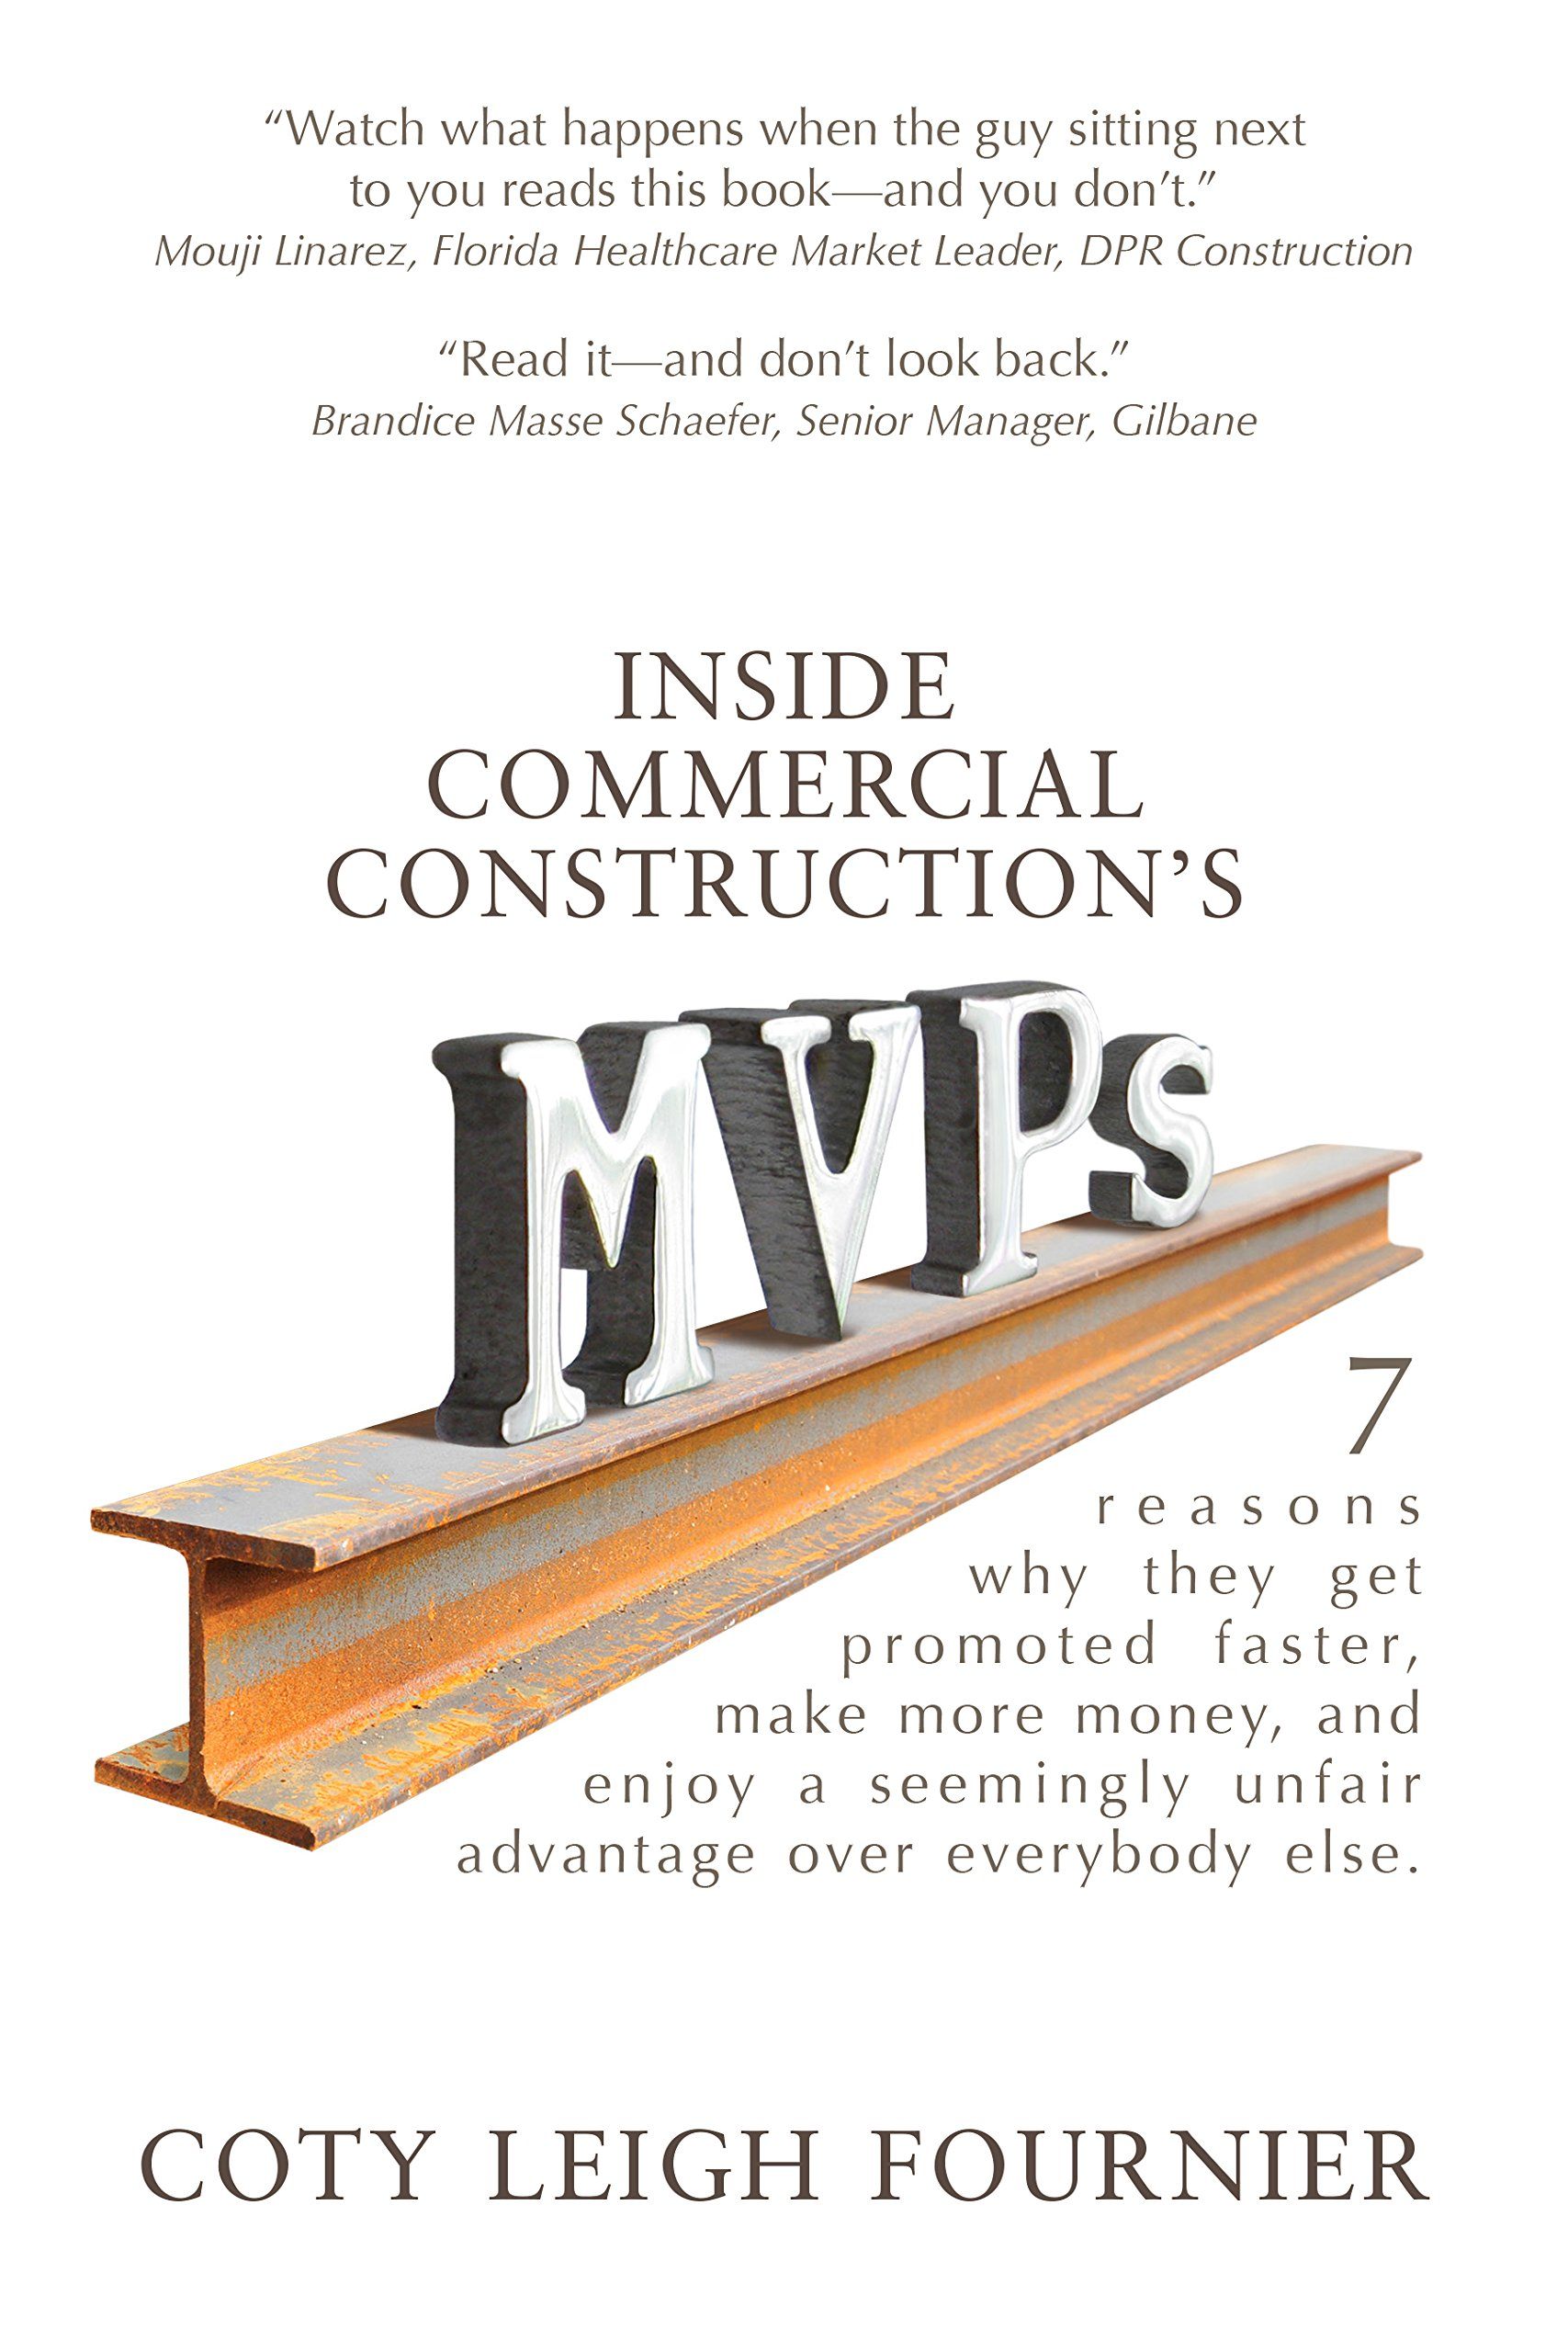 inside commercial construction s mvps reasons why they get inside commercial construction s mvps 7 reasons why they get promoted faster make more money and enjoy a seemingly unfair advantage over everybody else